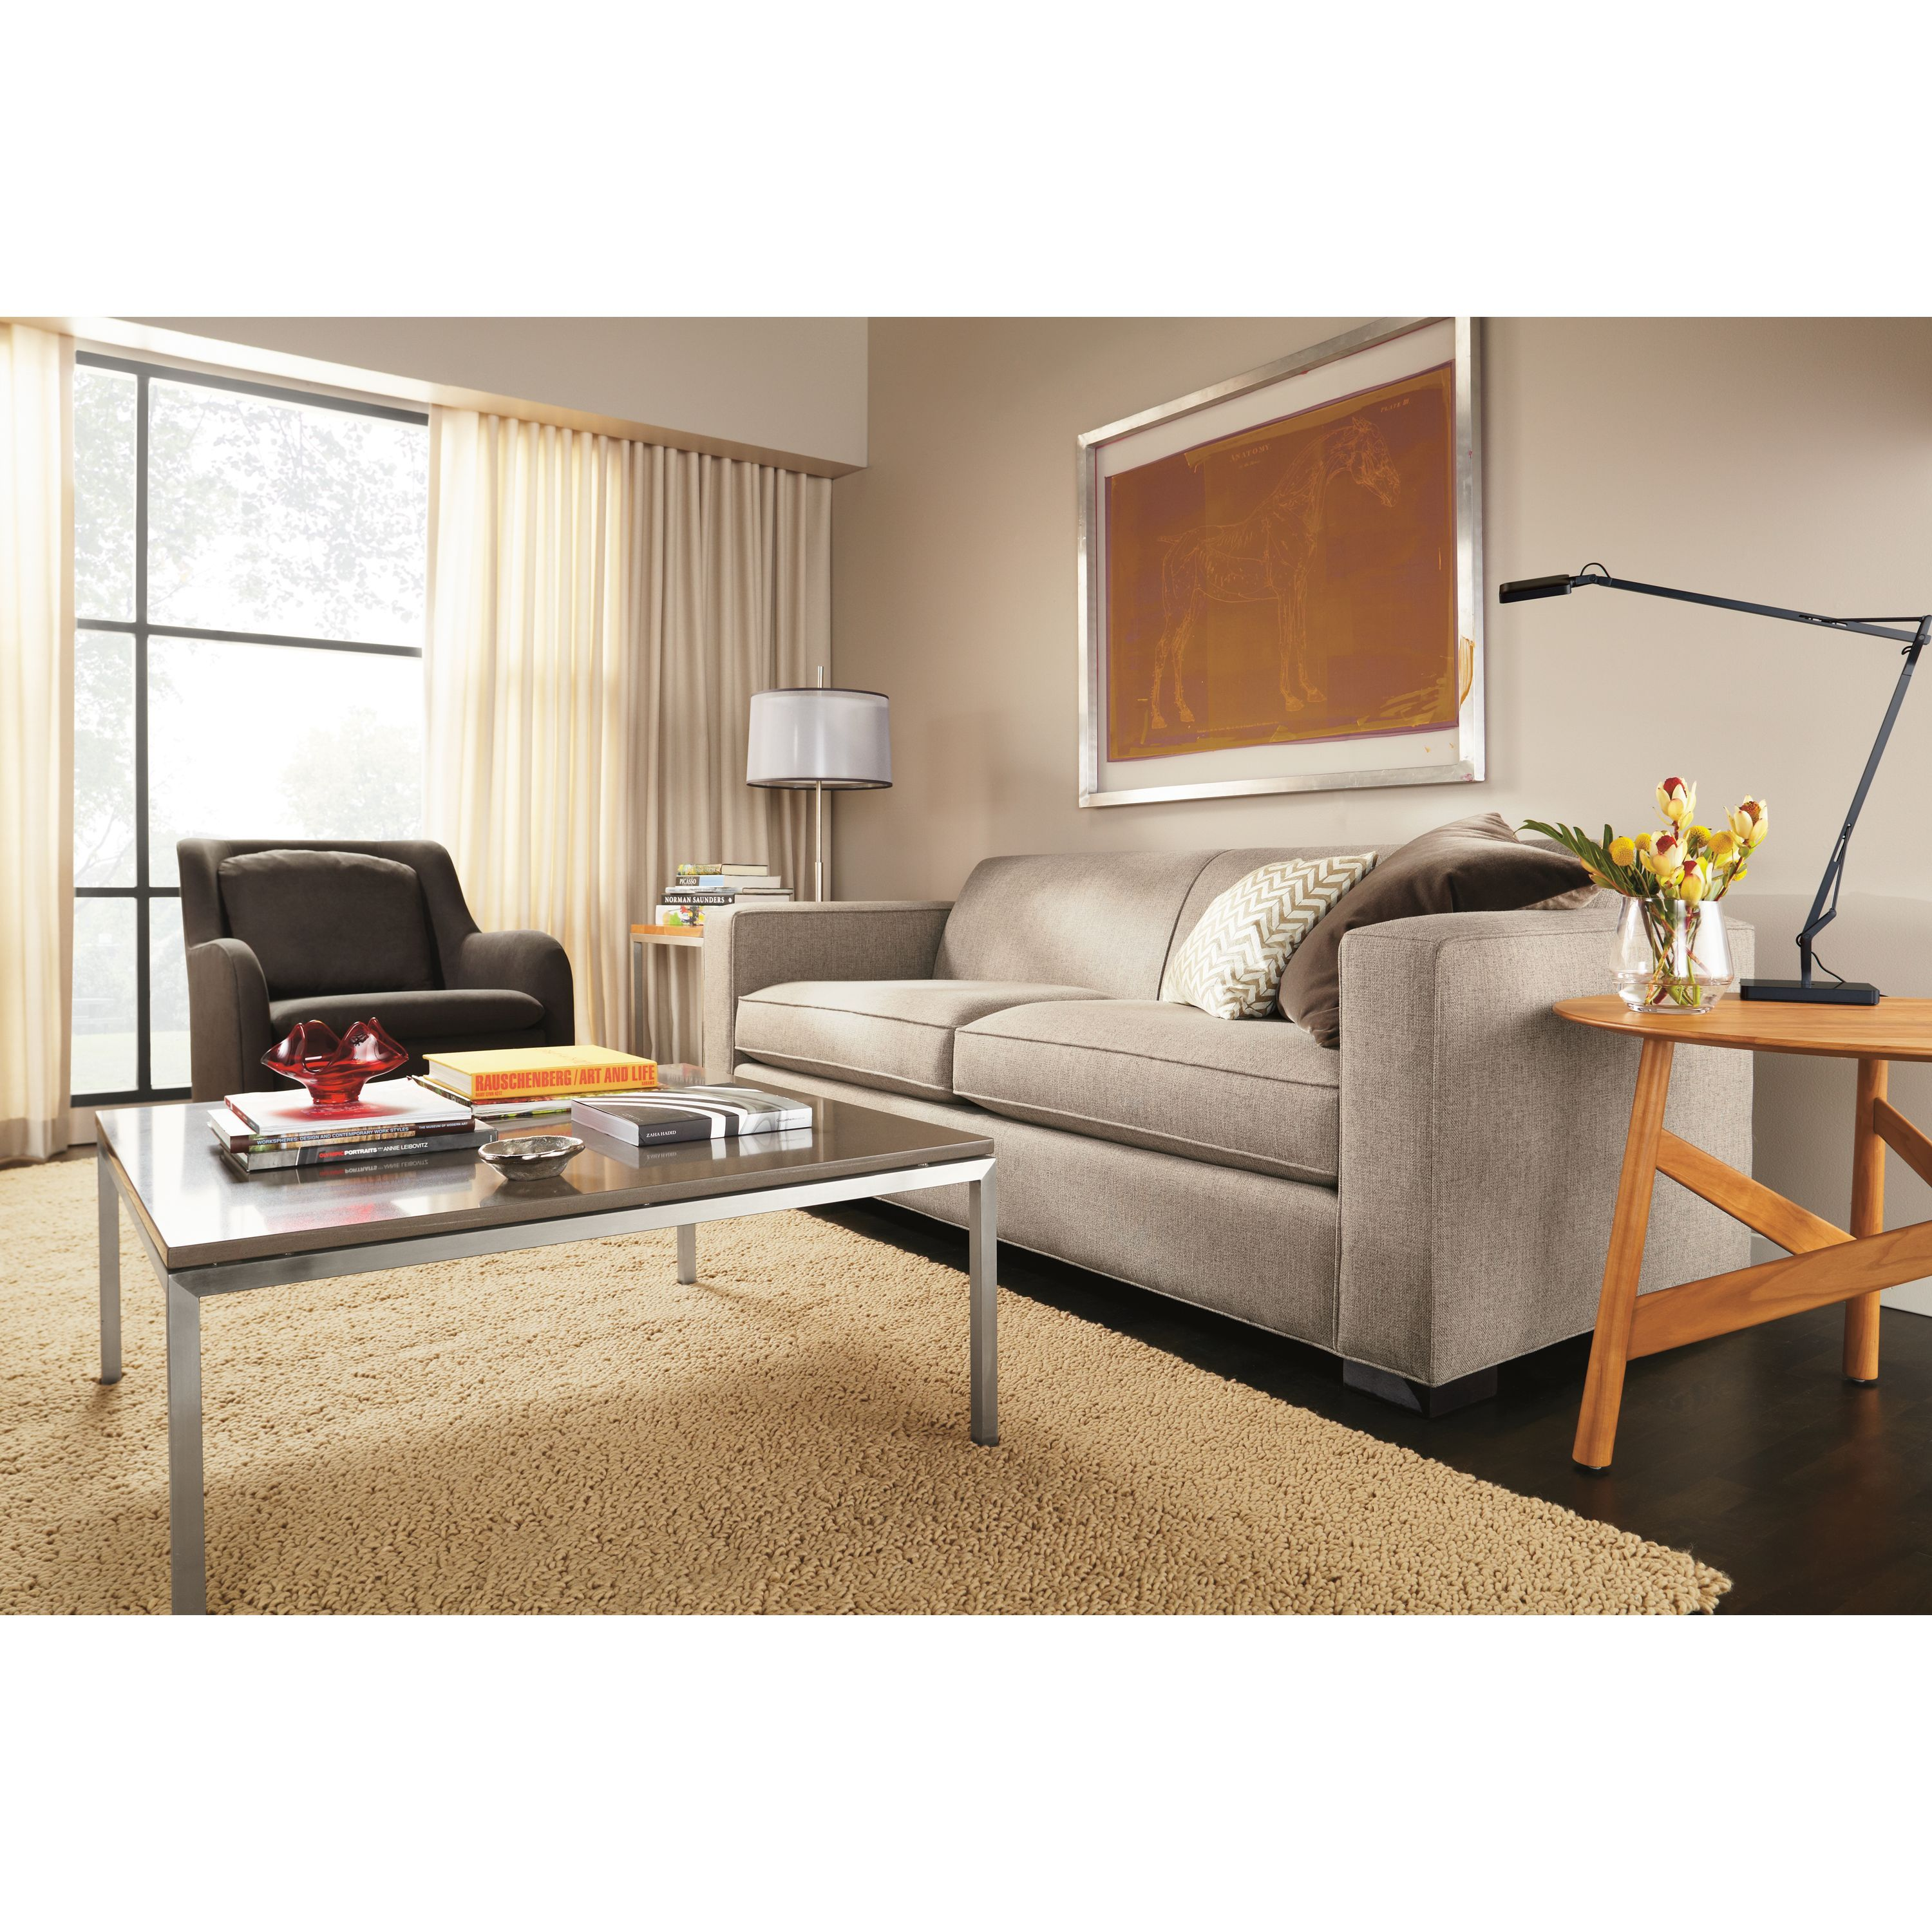 Astounding Room And Board Ian Sofa Baci Living Room Onthecornerstone Fun Painted Chair Ideas Images Onthecornerstoneorg